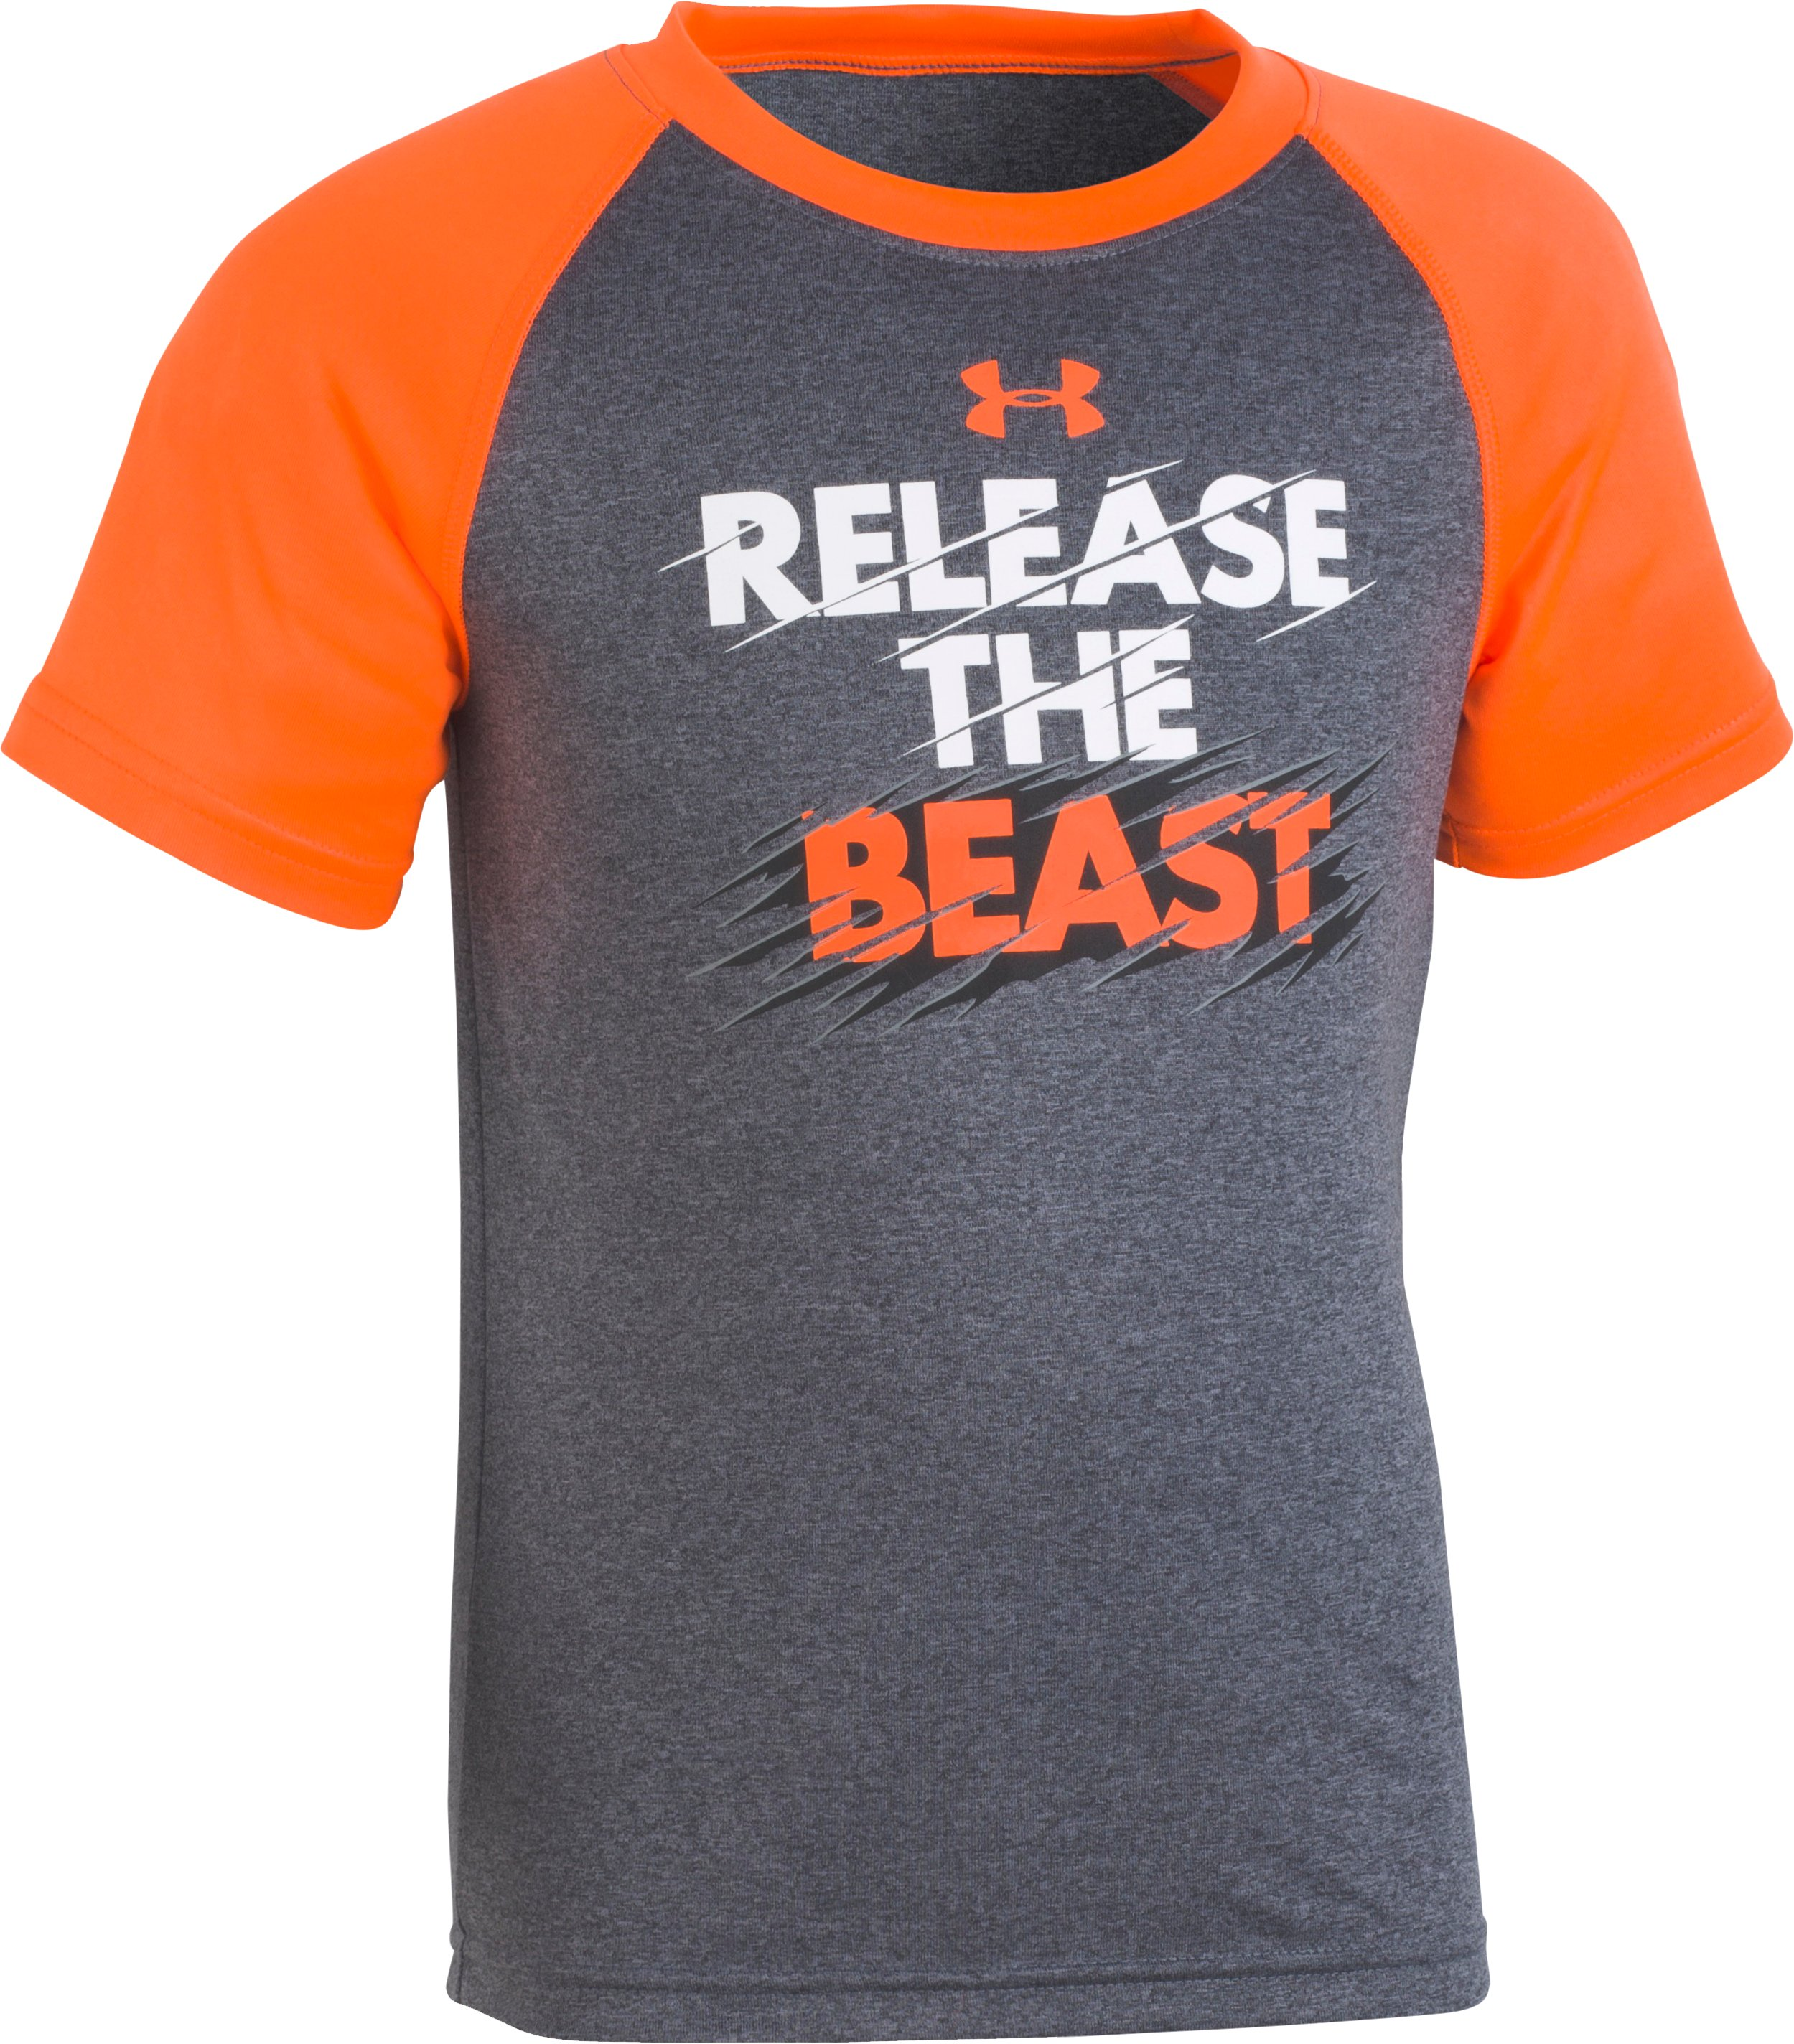 Boys' Infant UA Release The Beast T-Shirt , Charcoal Medium Heather, zoomed